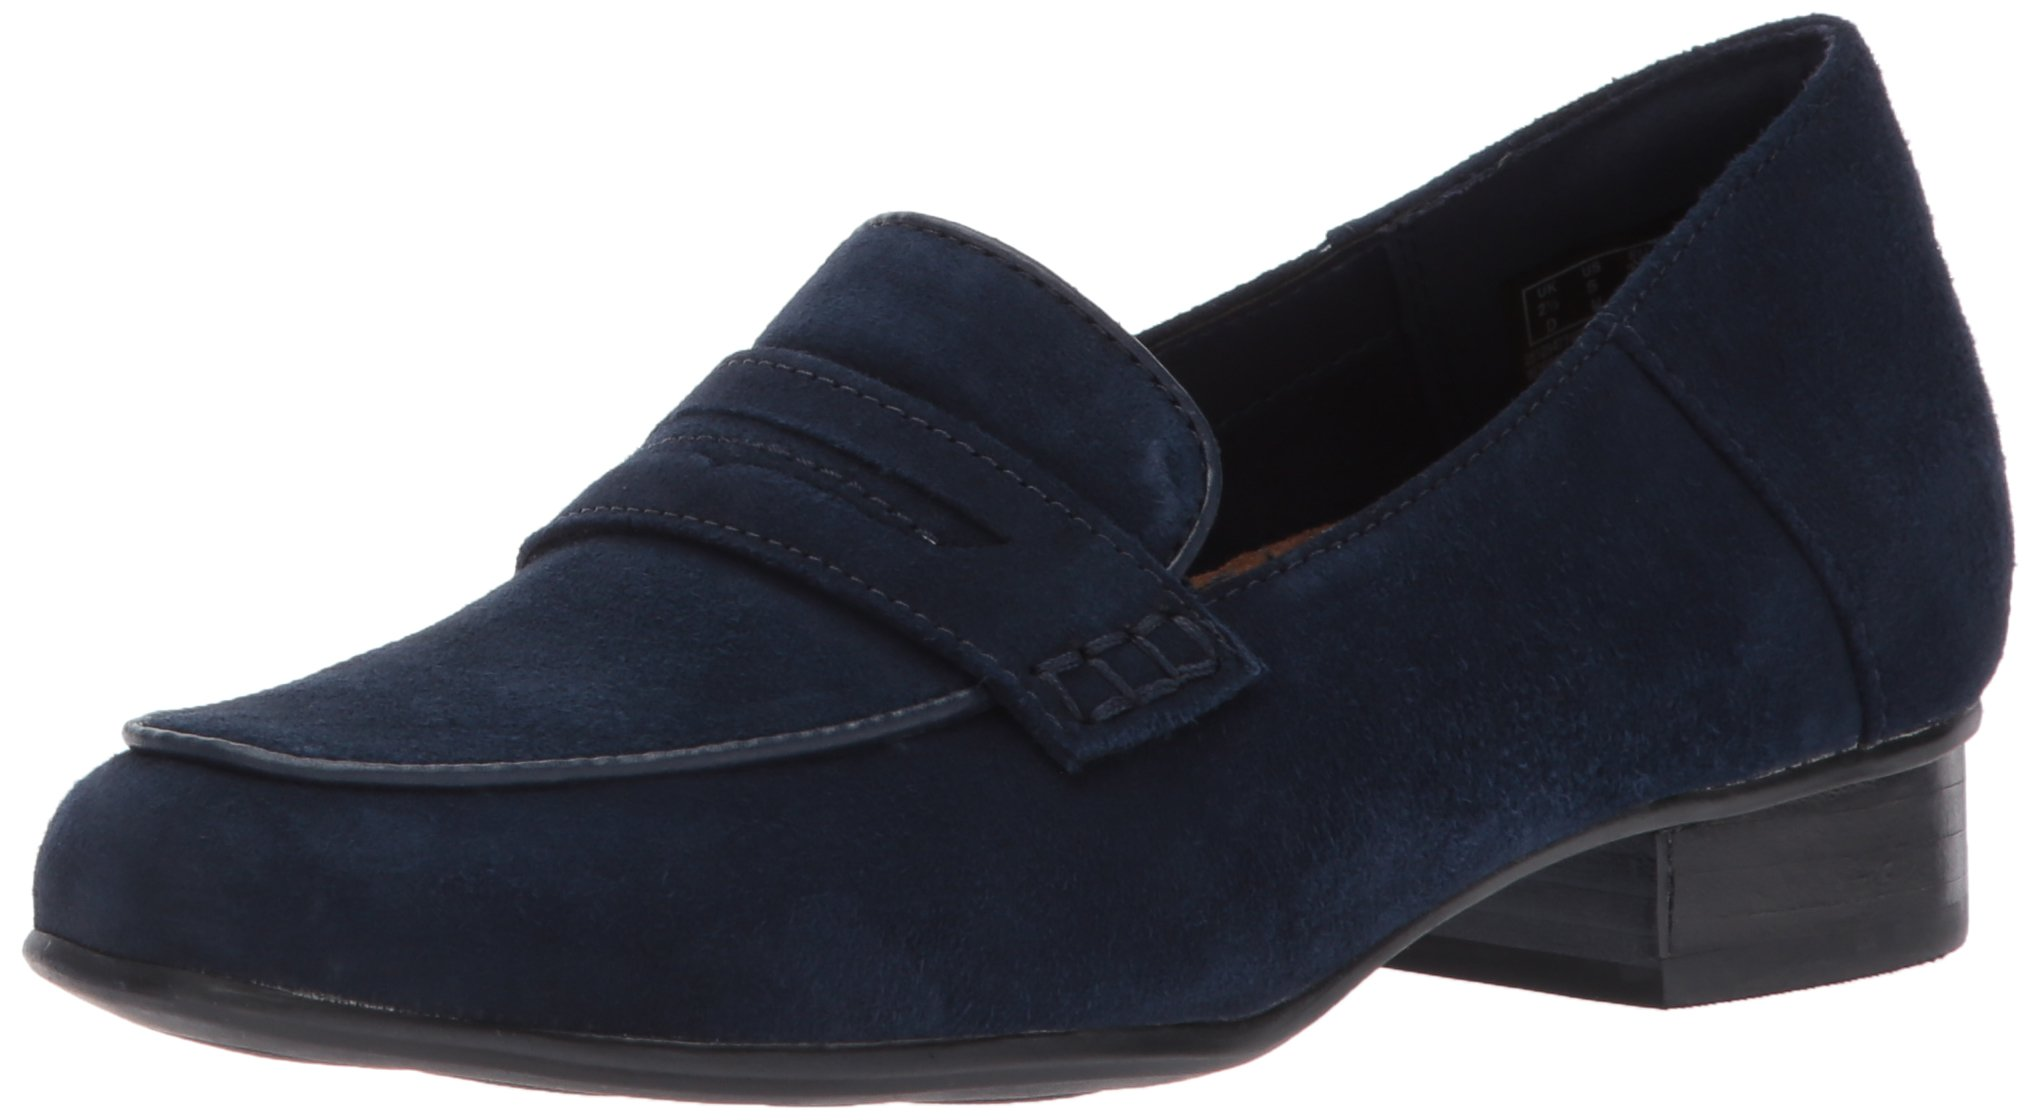 Clarks Women's Keesha Cora Penny Loafer, Navy Suede, 12 M US